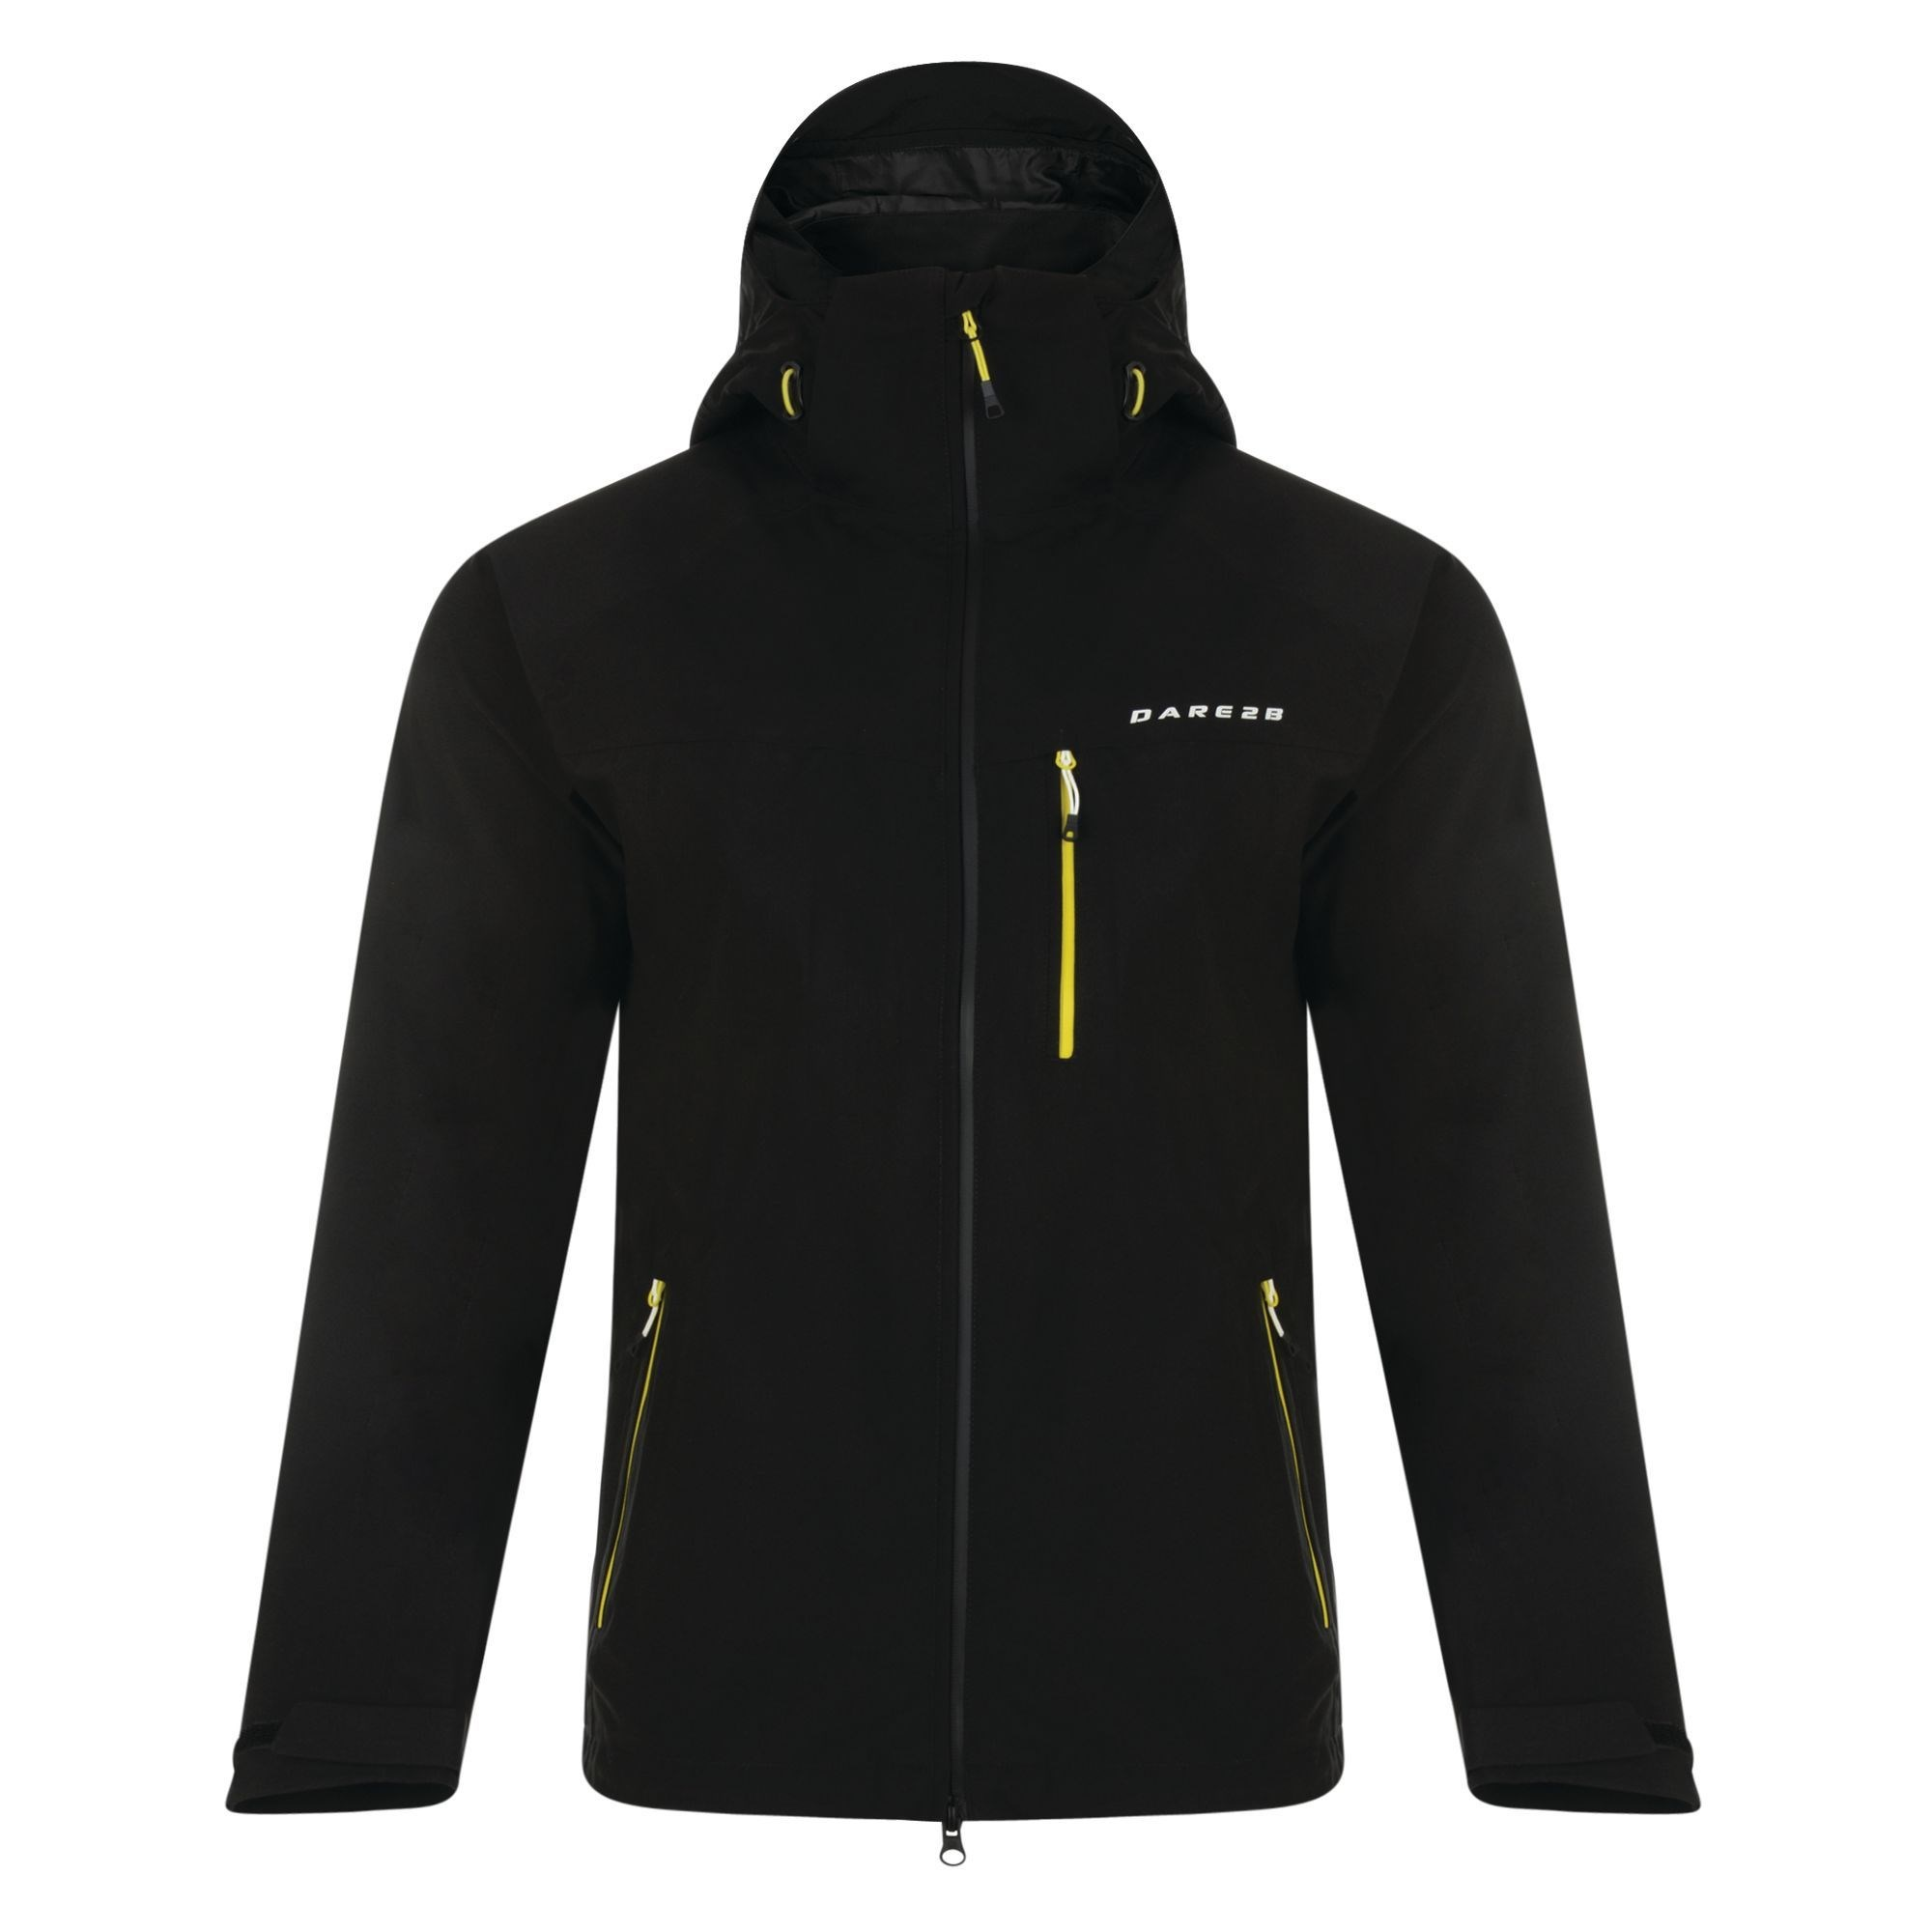 Mens Breathable Jackets and Waterproof Coats | GO Outdoors